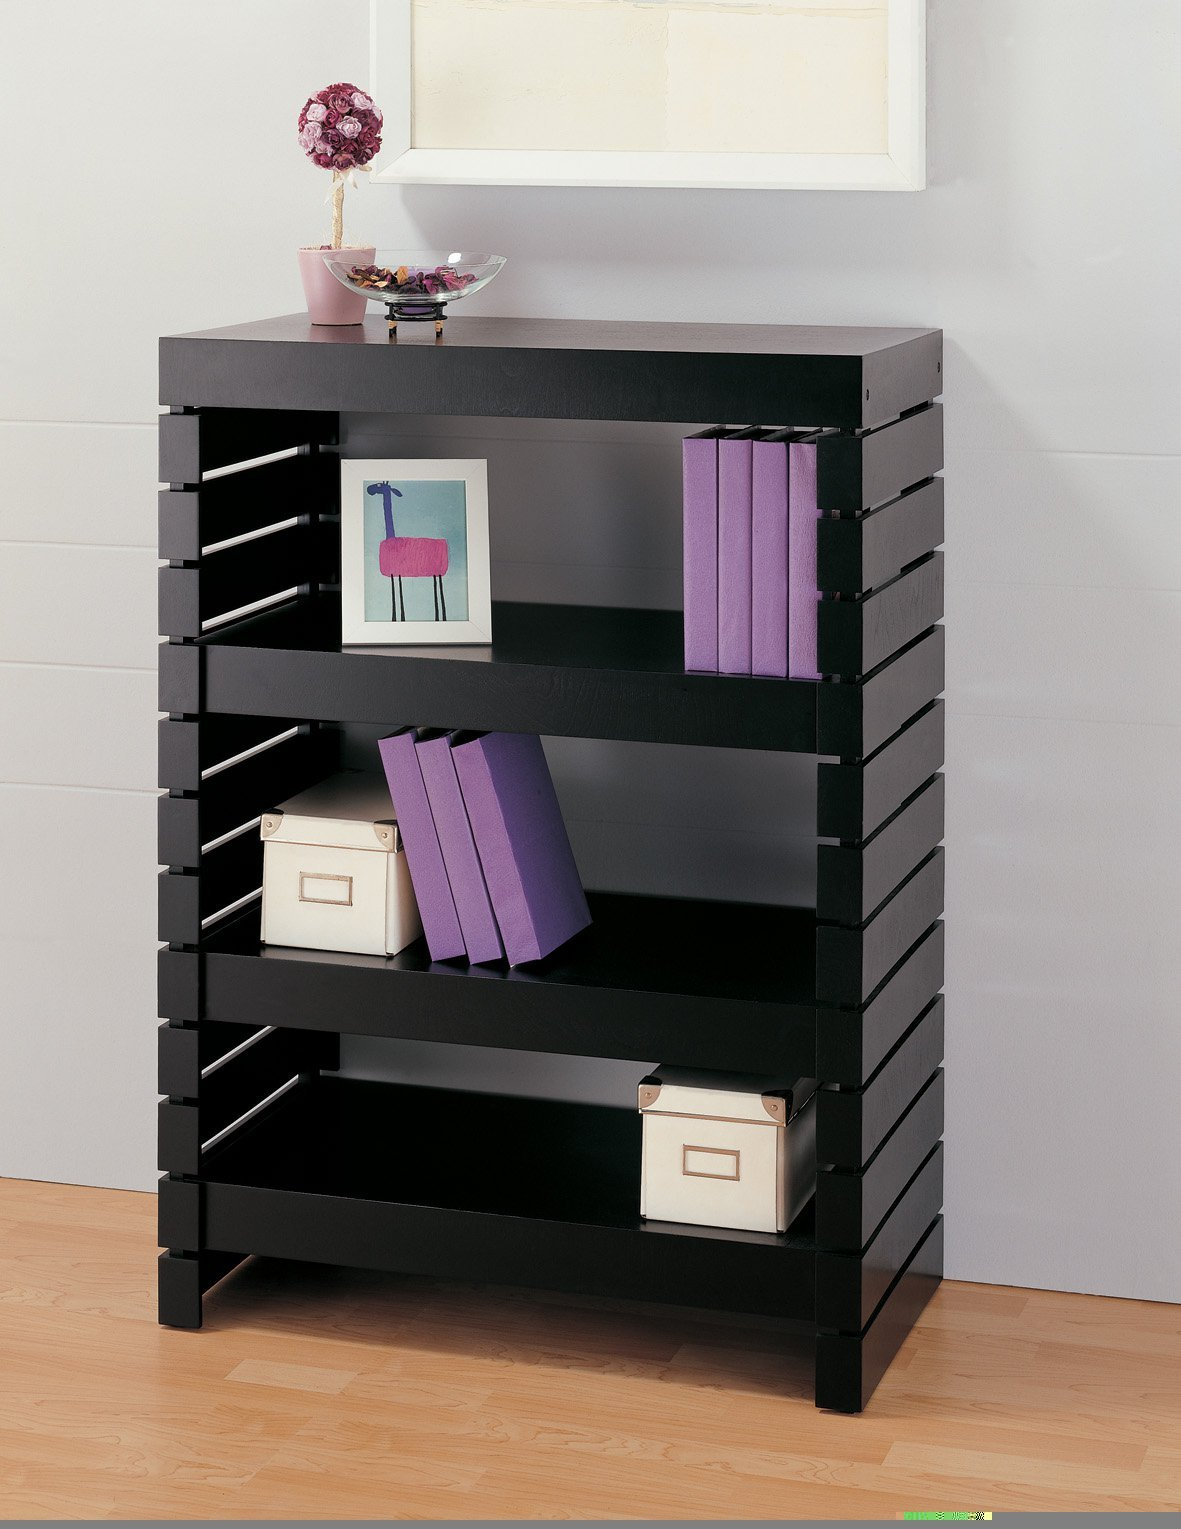 Bookcase (39654-1) 3 Tier Black Modern Bookshelves Constructed of Strong Engineered Wood Material - 32L x 17W x 43.75H in. Assembly Required